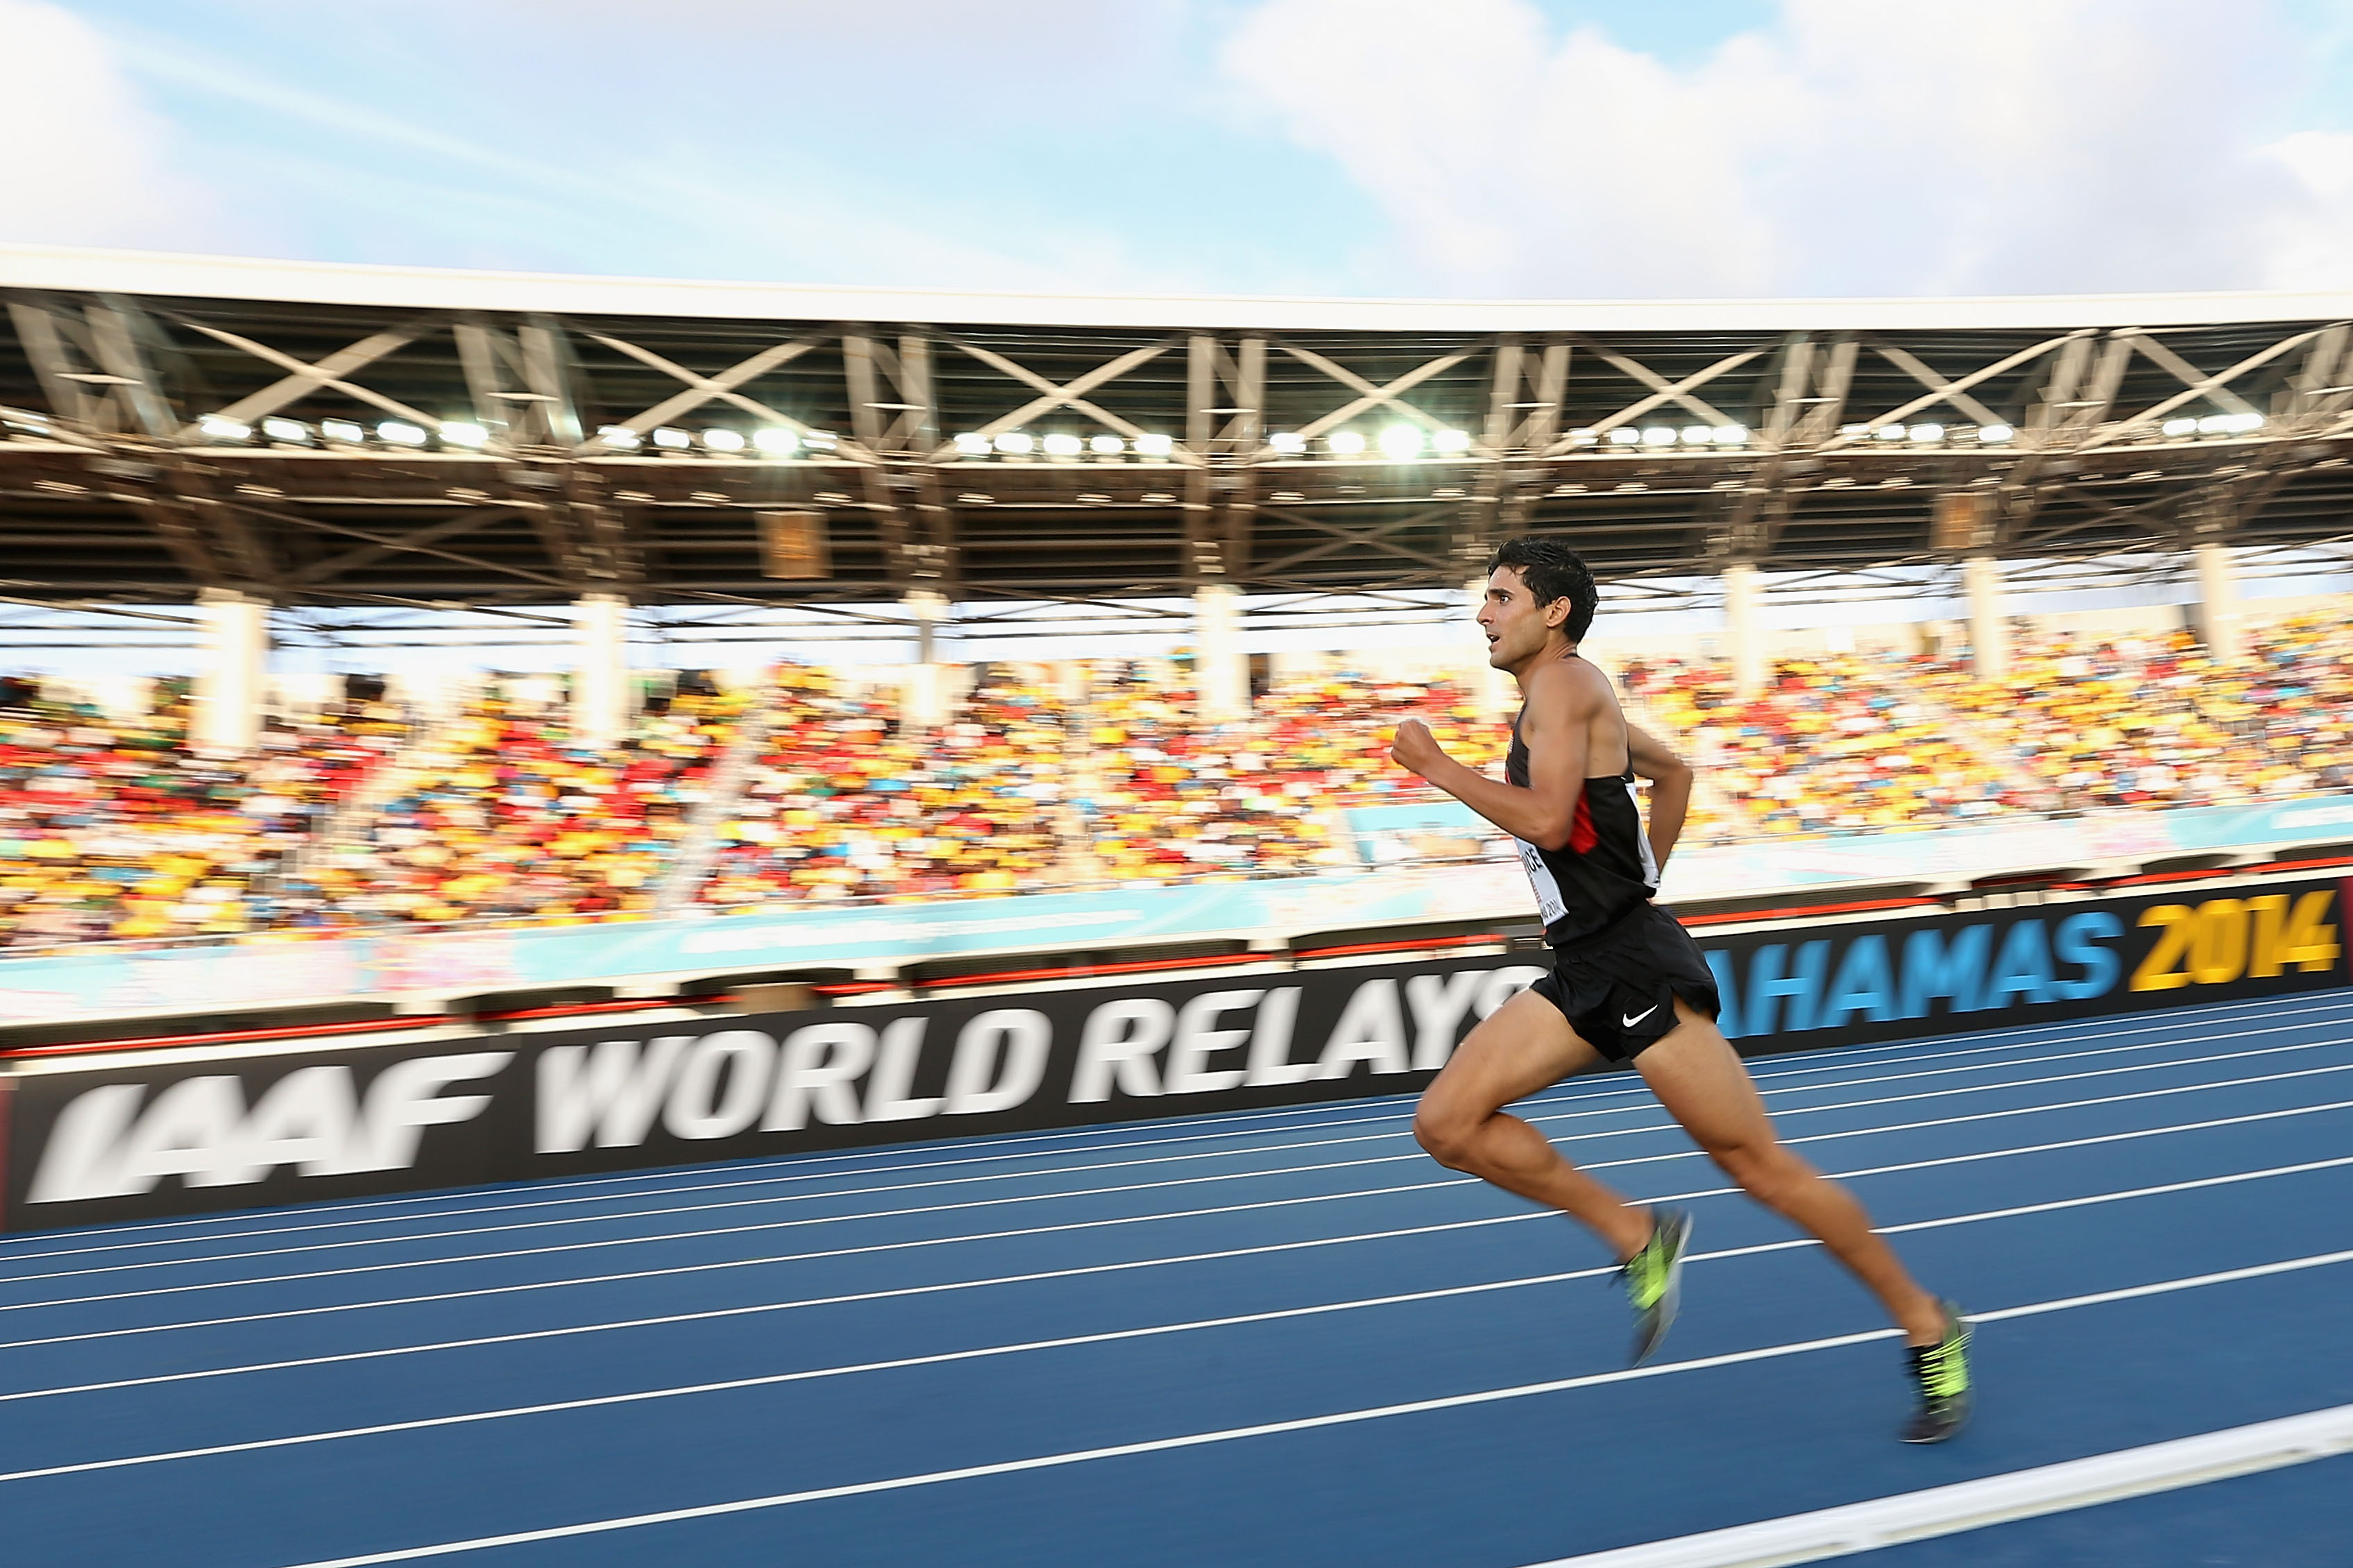 David Torrence of the United States competes in the Men's 4x1500 metres relay final during day two of the IAAF World Relays at the Thomas Robinson Stadium on May 25, 2014 in Nassau, Bahamas.